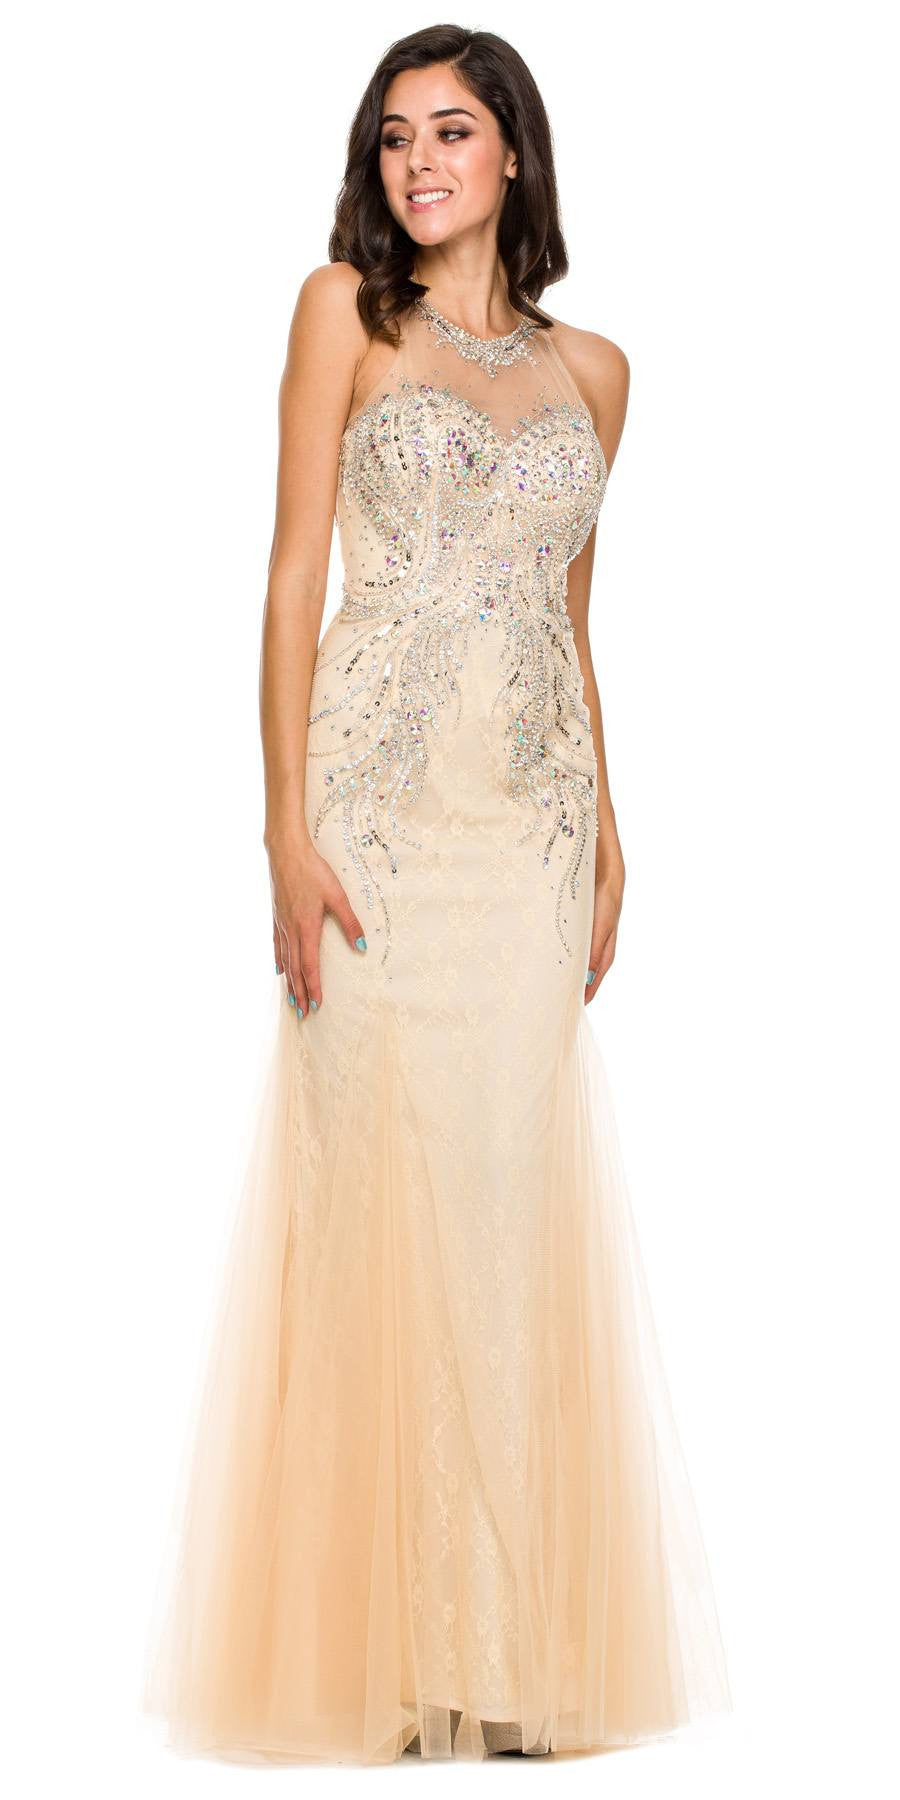 Long Formal Fish Tail Gown Champagne Mesh/Tulle Rhinestones